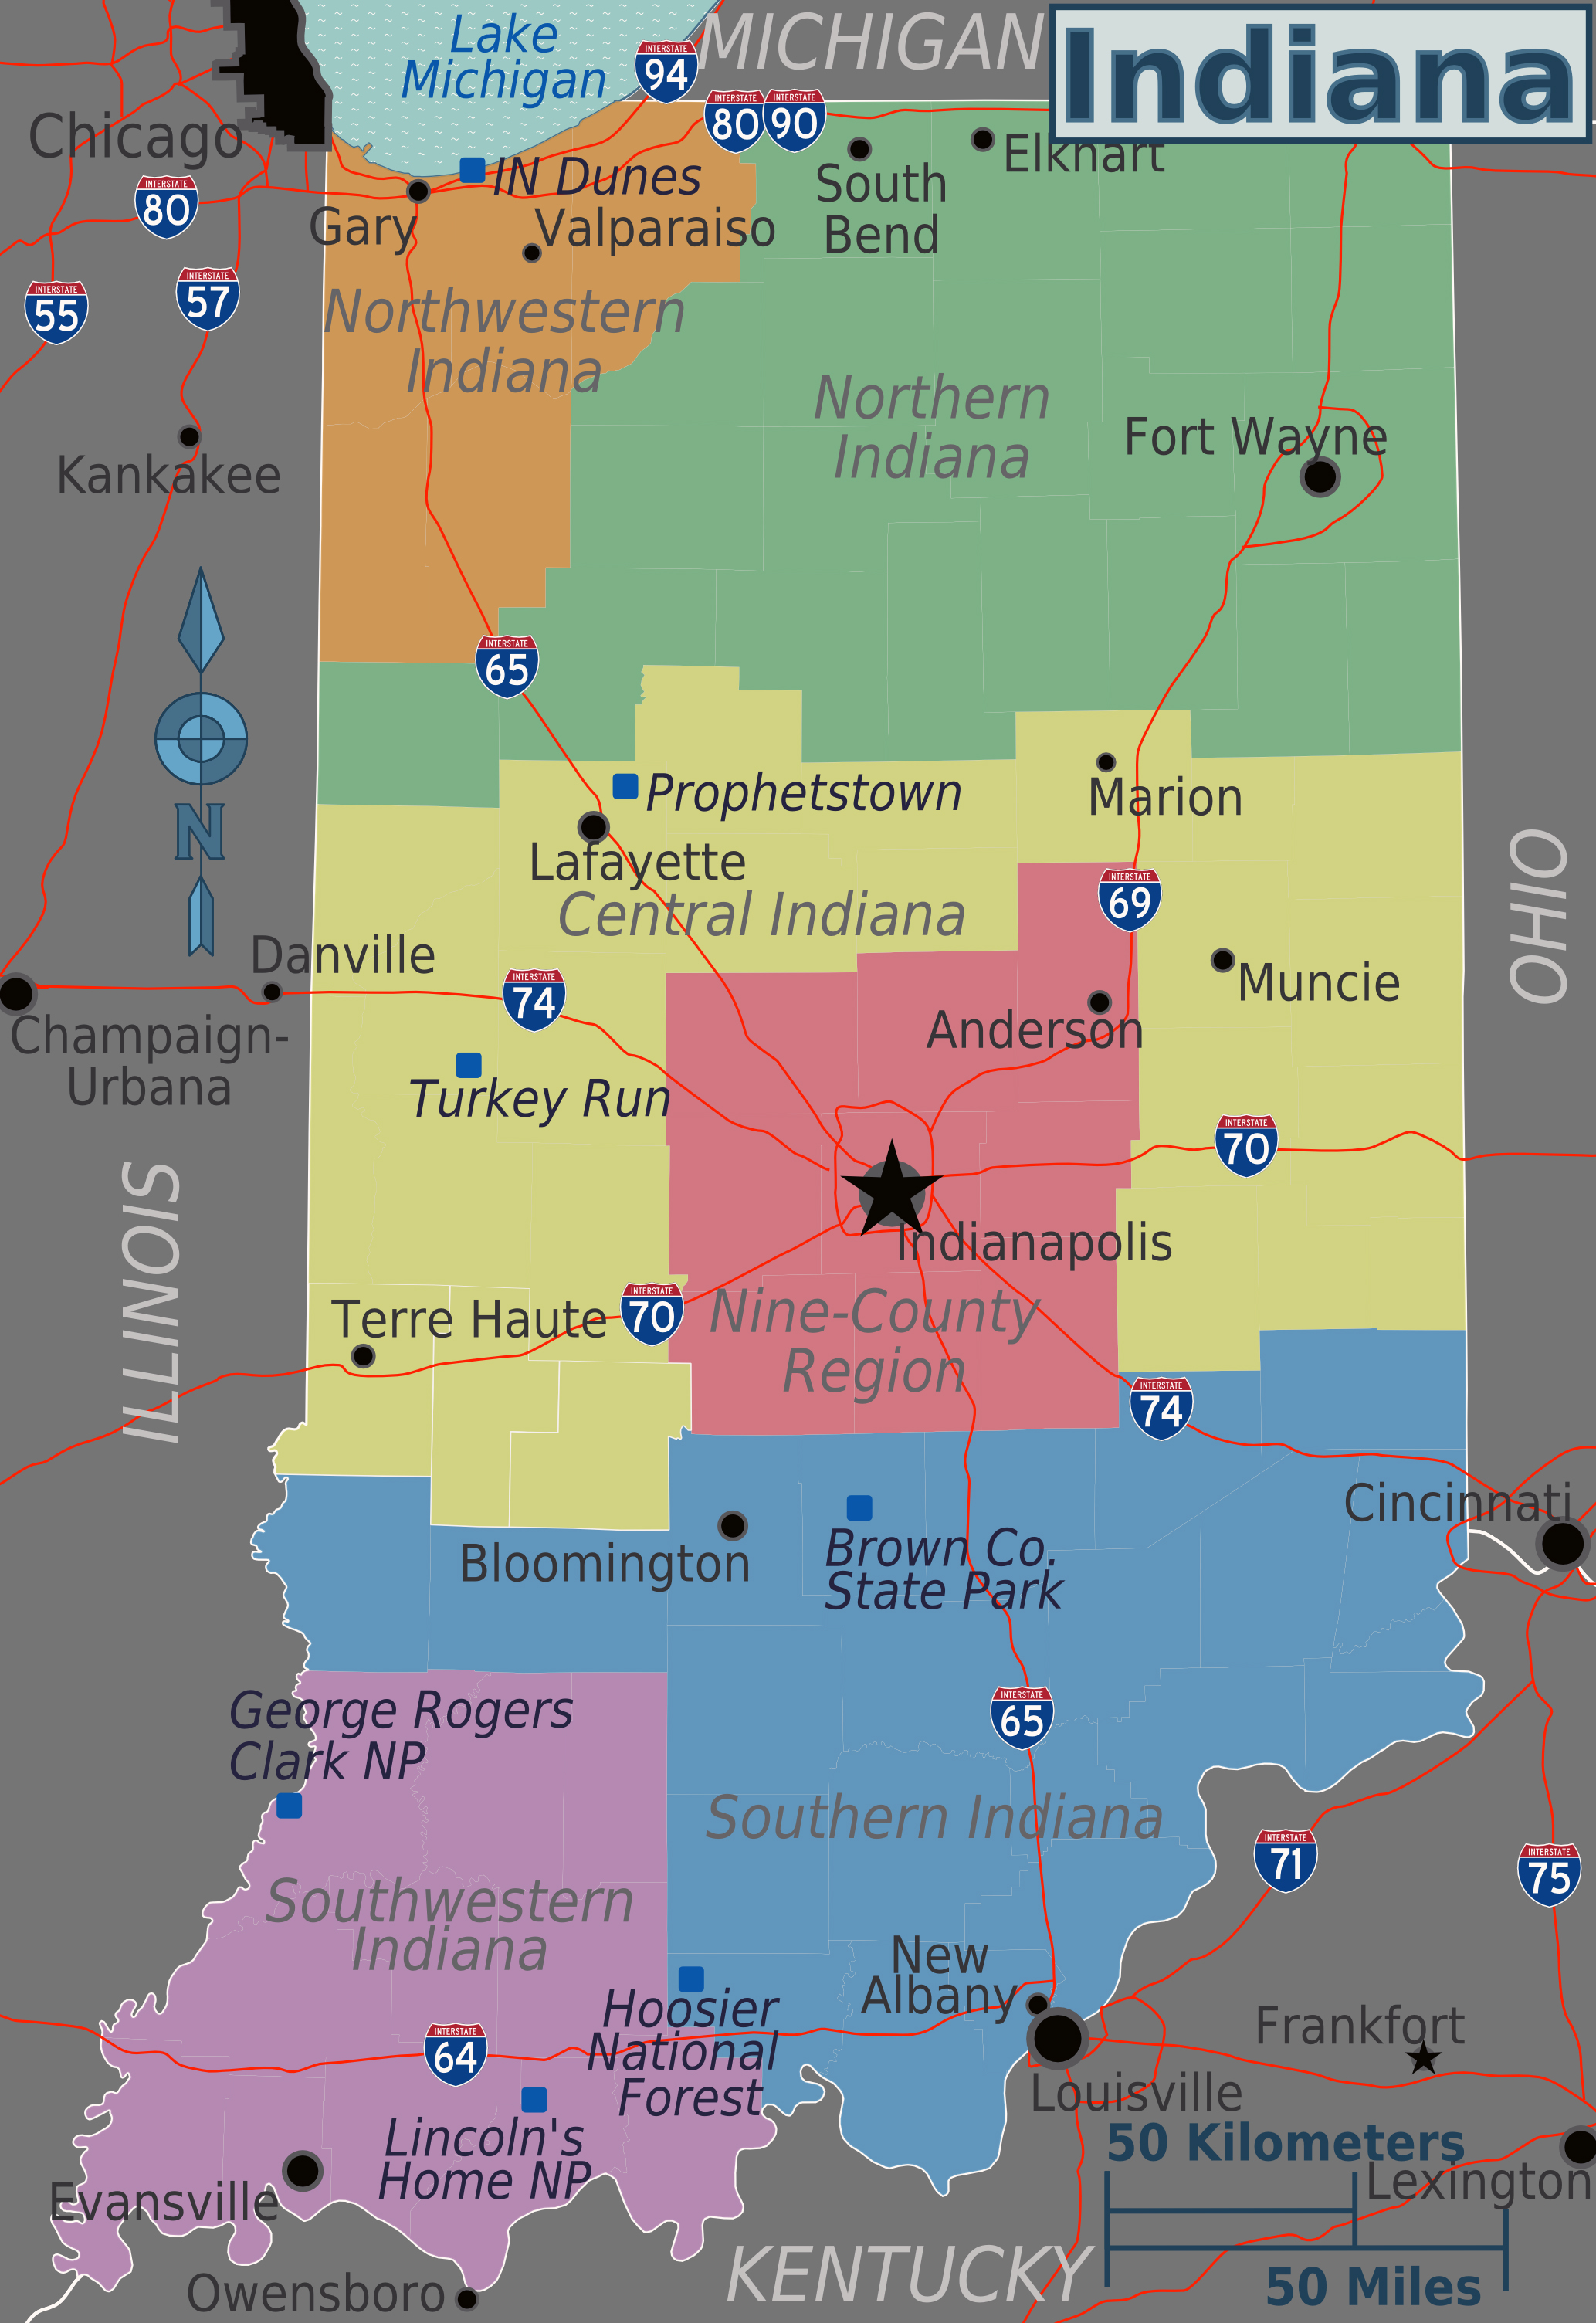 Large Regions Map Of Indiana State Indiana State USA Maps Of - Indiana state on us map